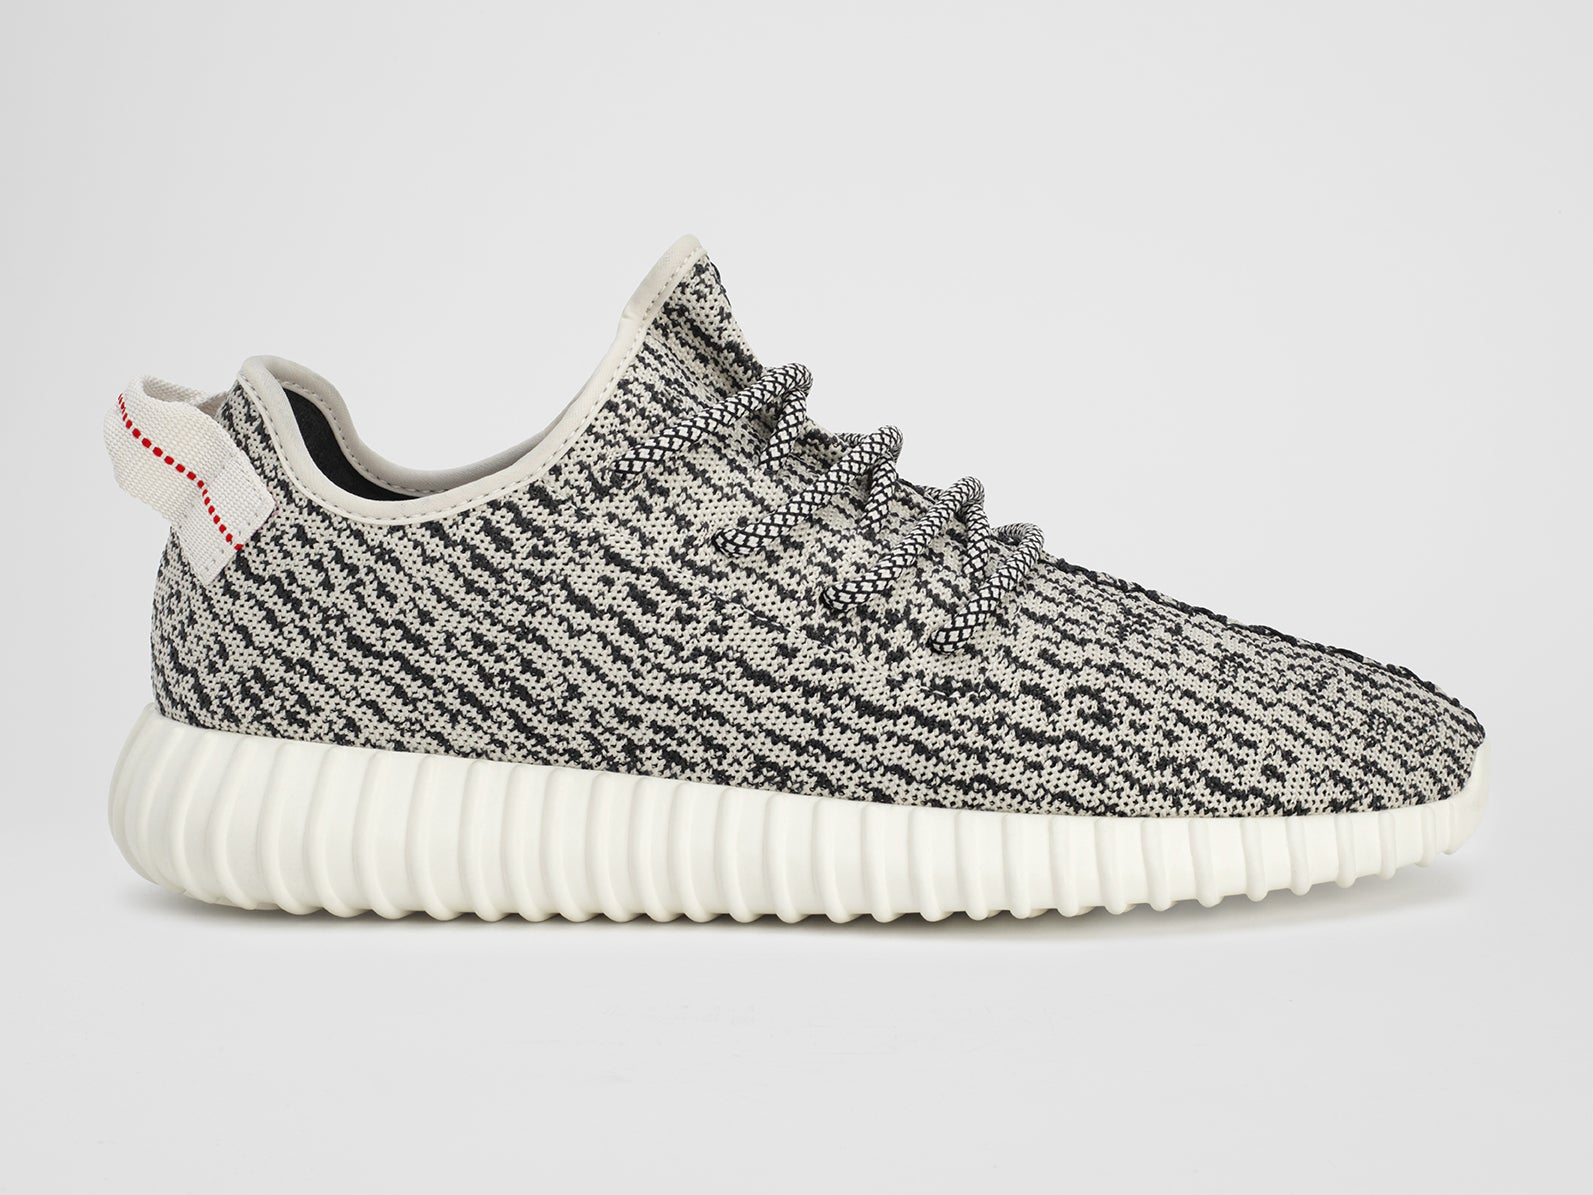 Yeezy Boost 350: Release date and price on the new Kanye West x Adidas  sneakers | The Independent